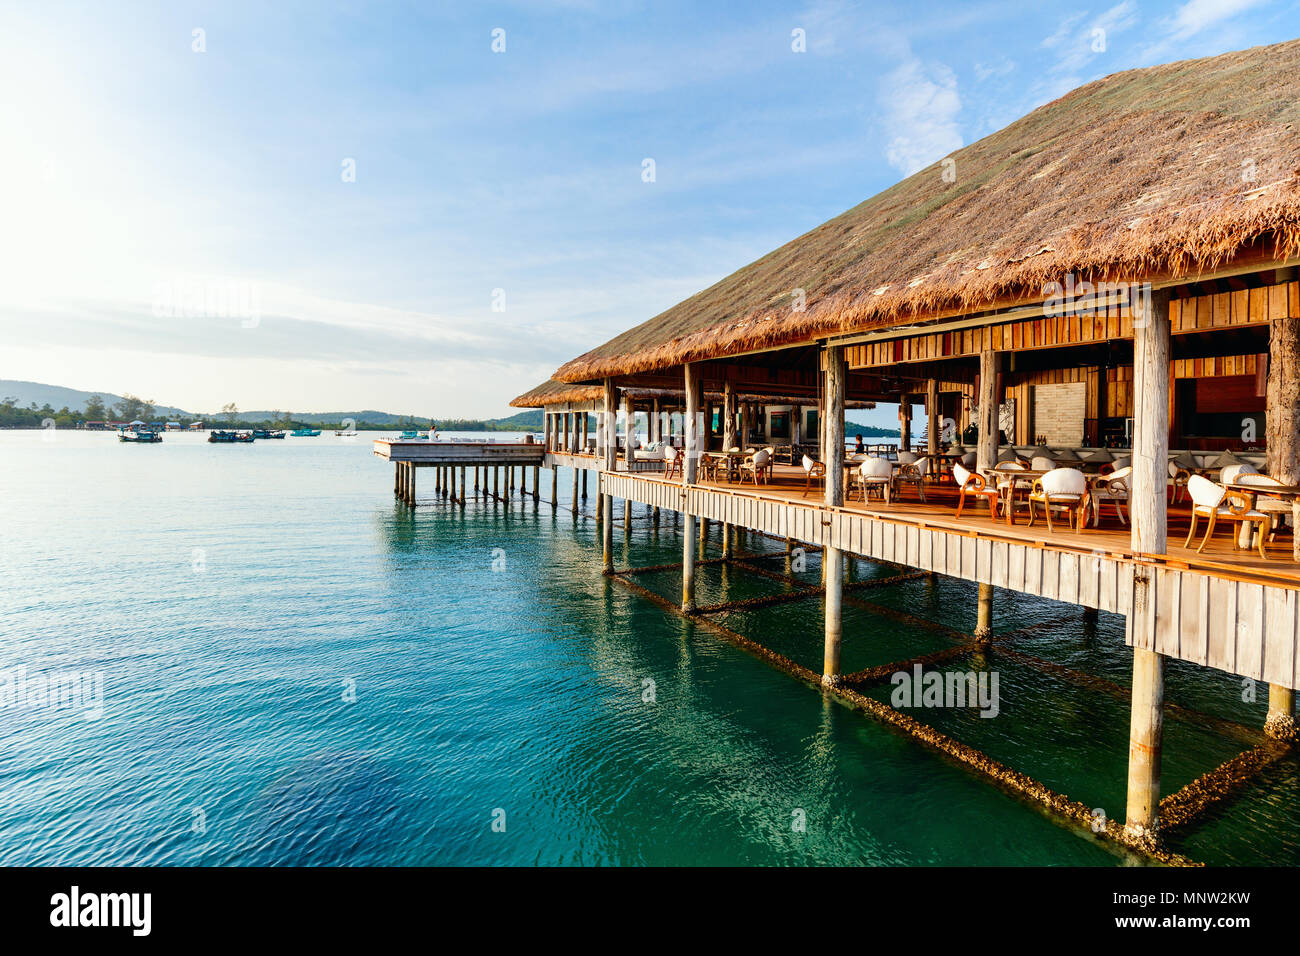 Tropical overwater bar in a luxury resort - Stock Image